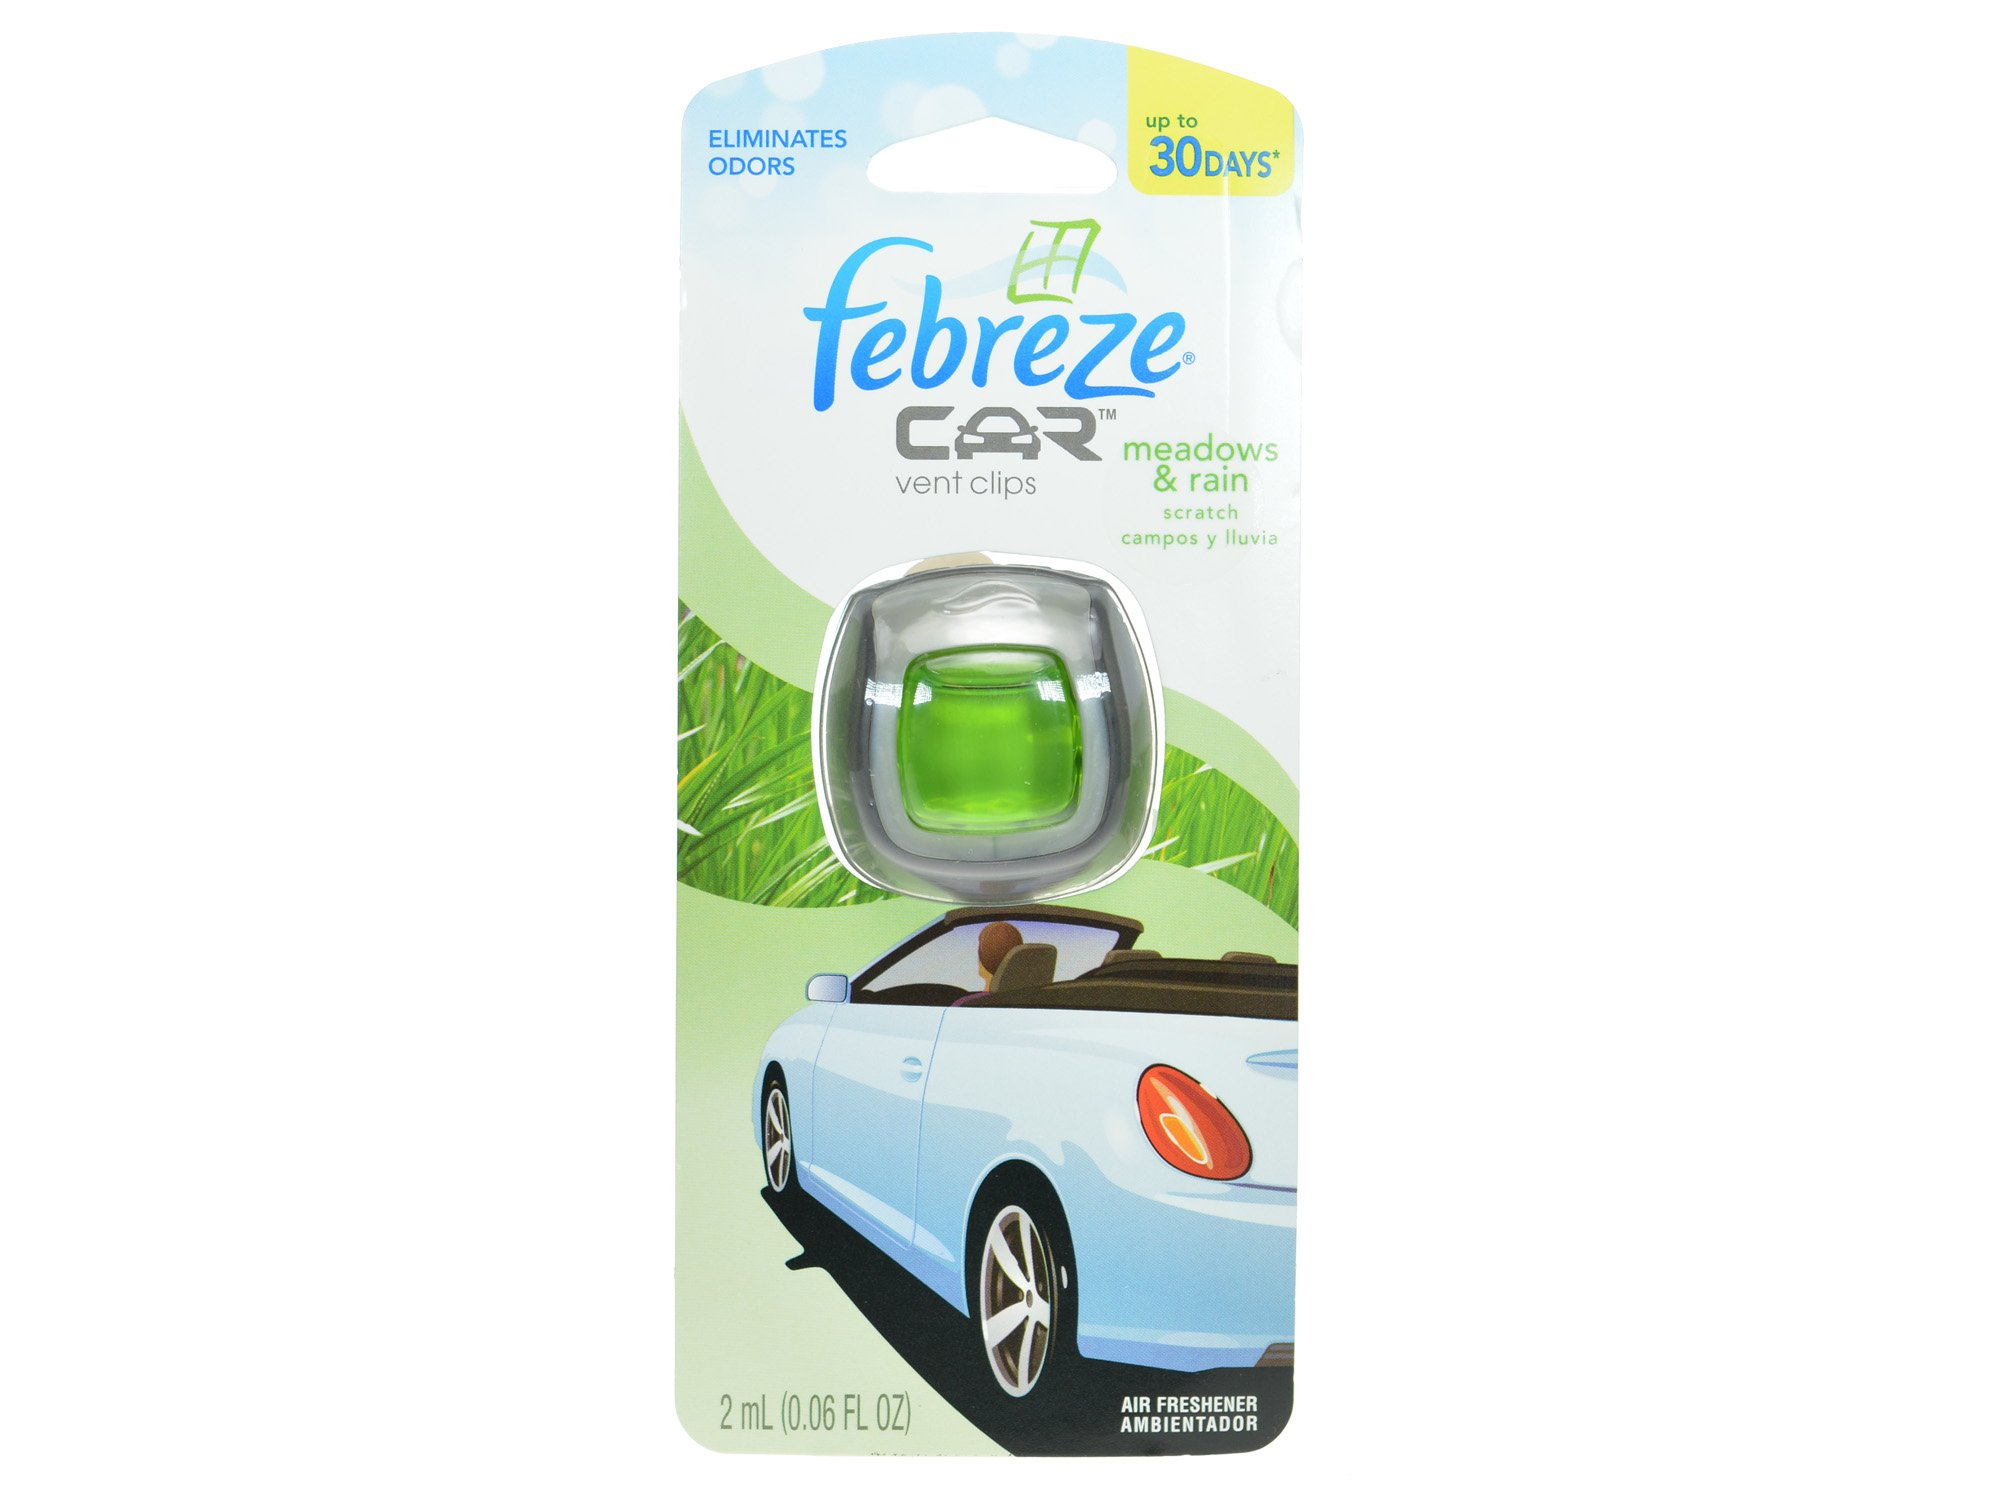 Febreze Car Vent Clips Air Freshener, Meadows & Rain, 1 Count 2 Ml Each (Pack of 8) by Febreze (Image #1)